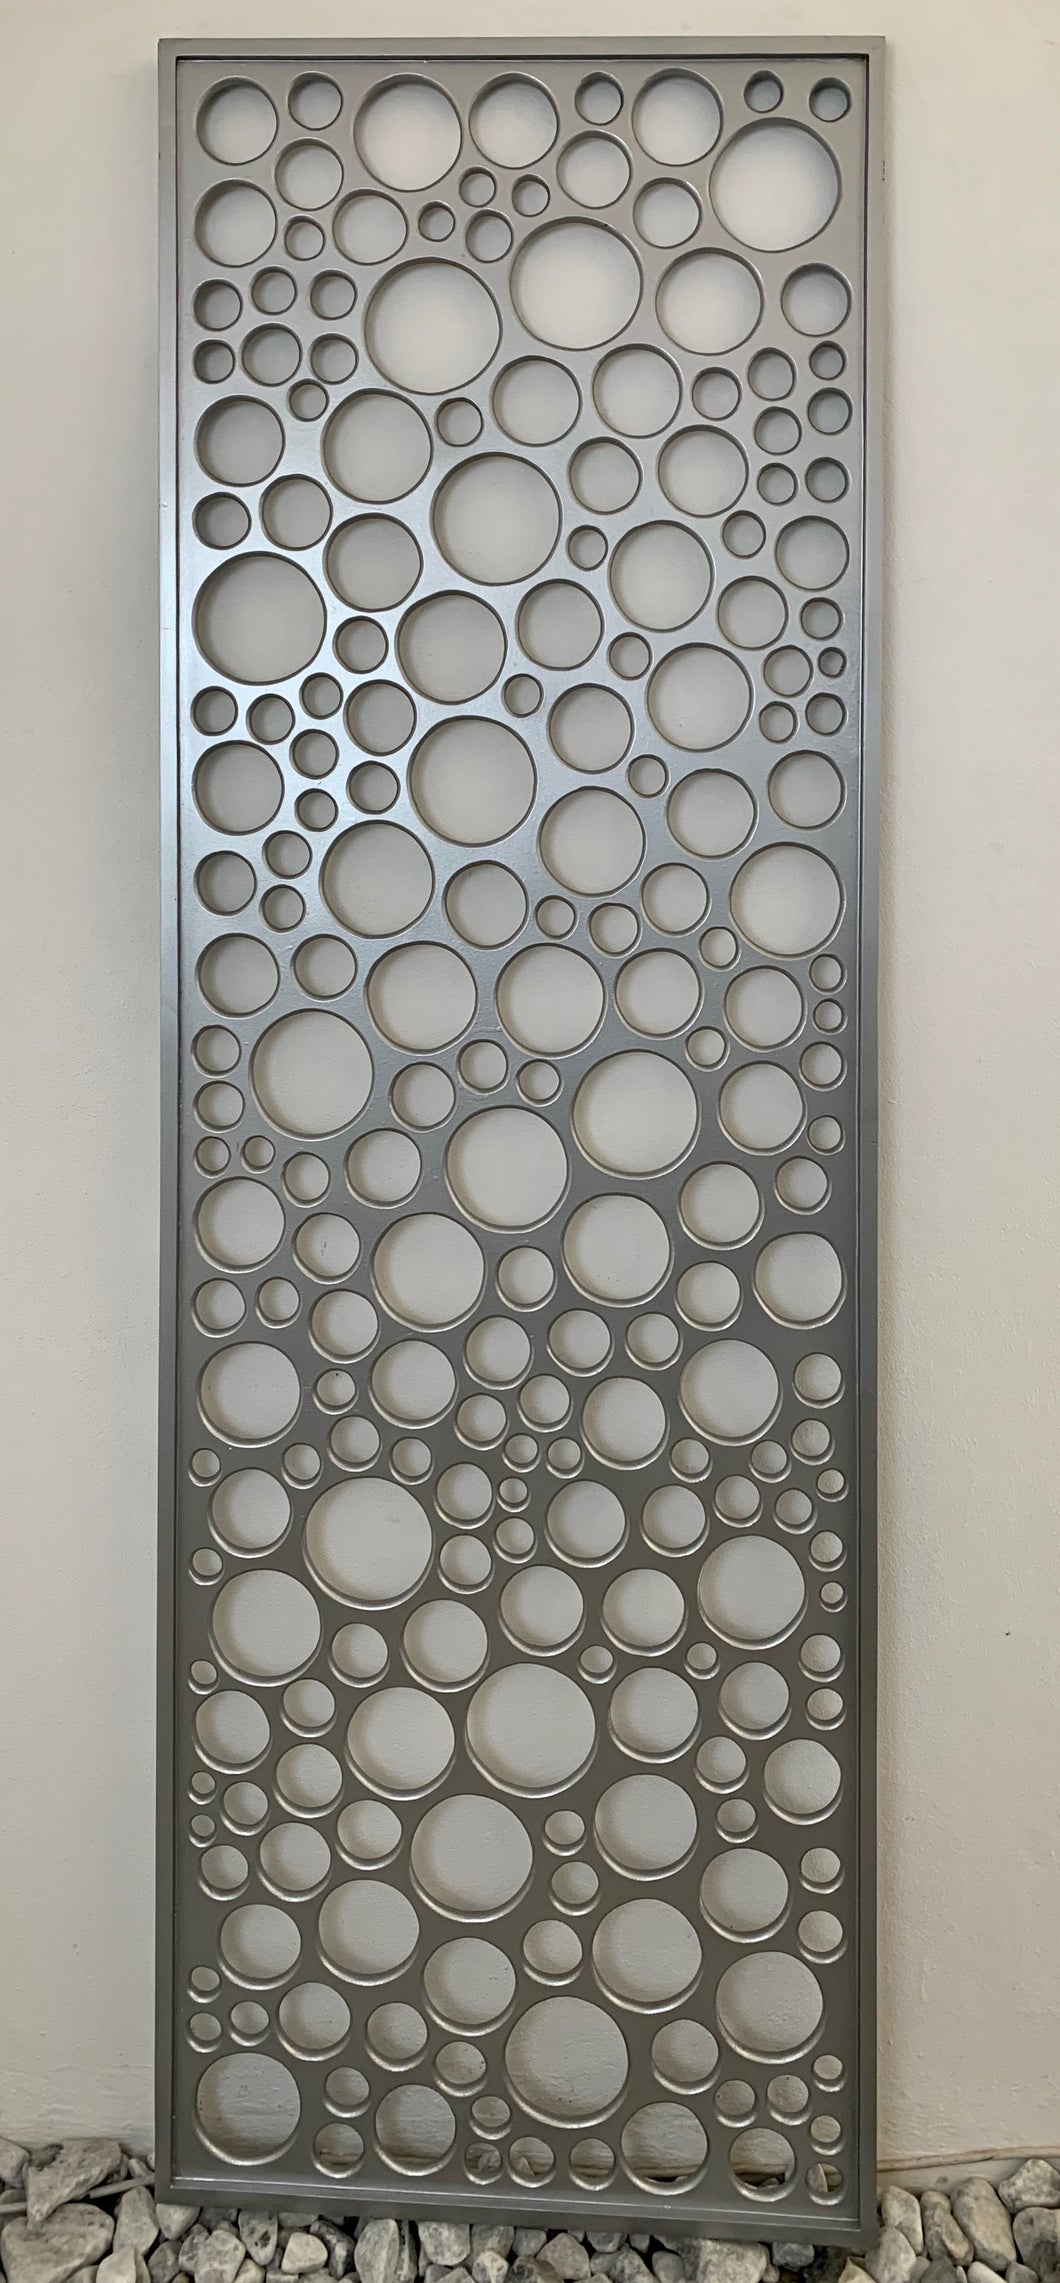 SILVER WALL PANEL WITH BUBBLES